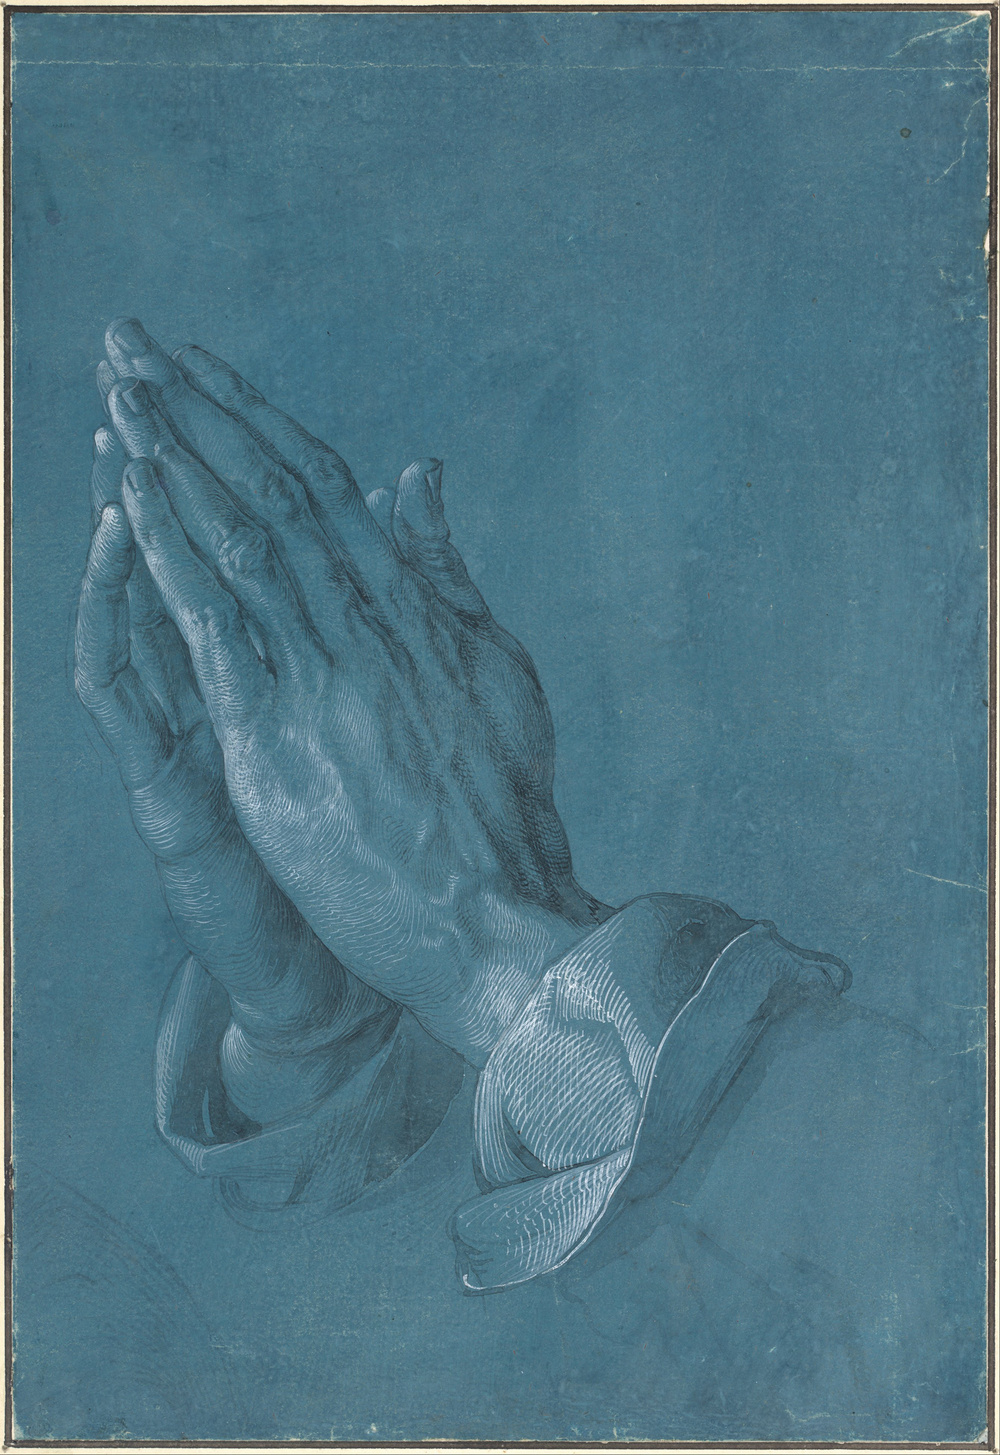 "Studie zu den Händen eines Apostels (""Study of the Hands of an Apostle,"" also known as Betende Hände (""Praying Hands"")), c. 1508, by German artist Albrecht Dürer [Public domain], via Wikimedia Commons"